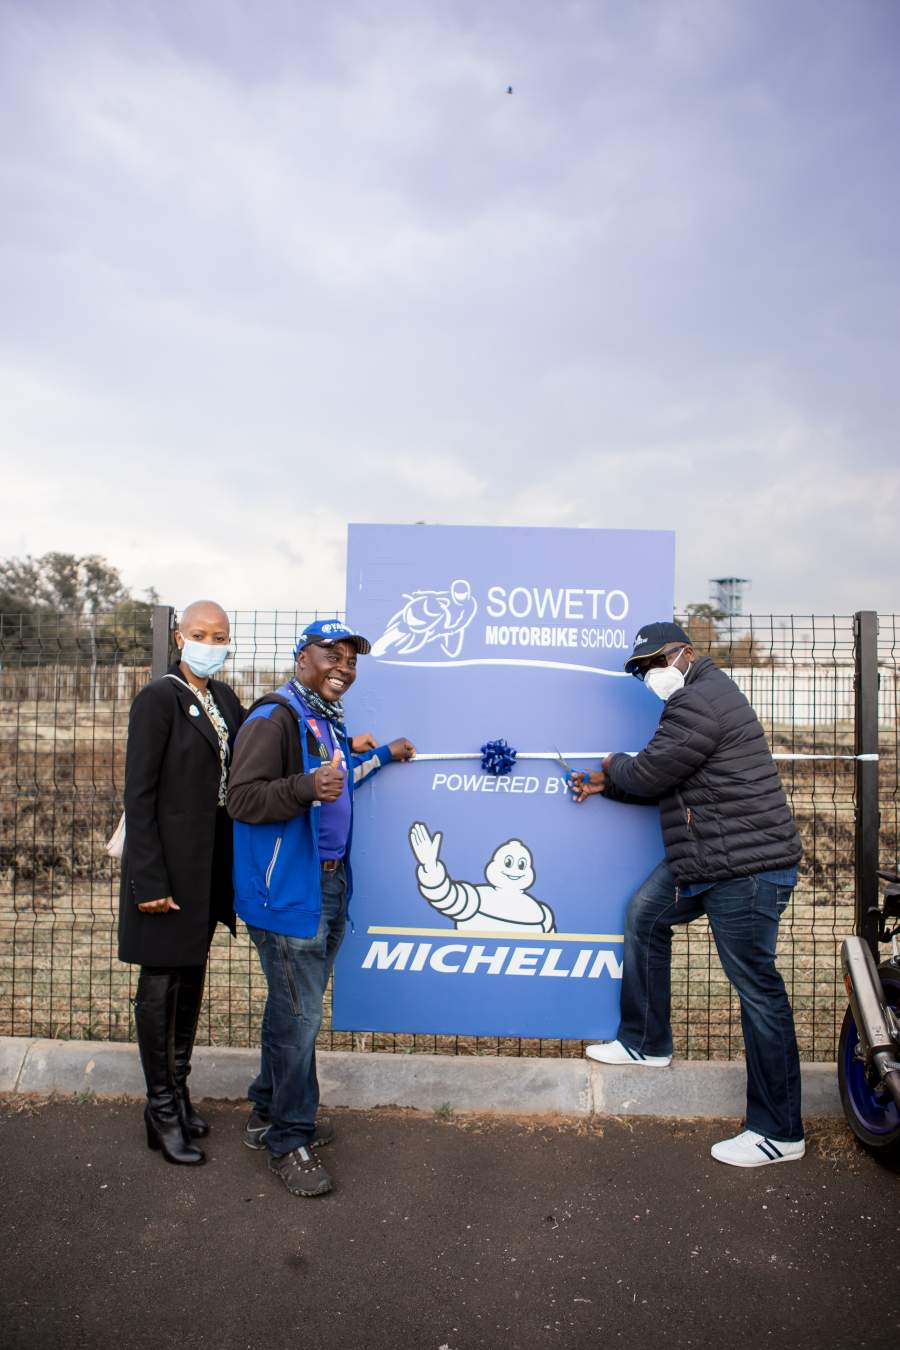 Michelin Partners with the Soweto Motorbike School to Help Tackle Youth Unemployment